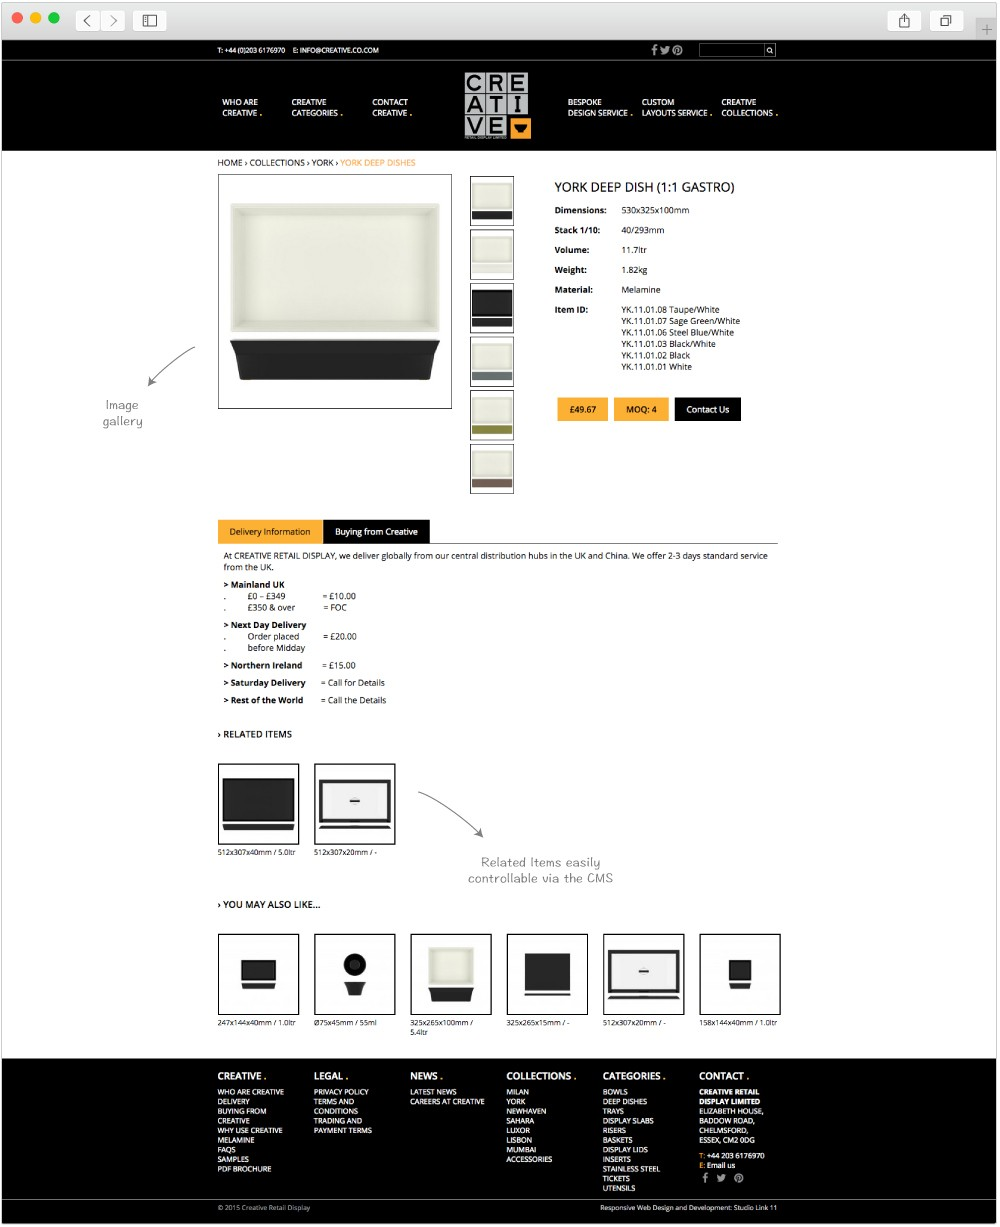 Creative Retail Display Product page design by Studio Link 11